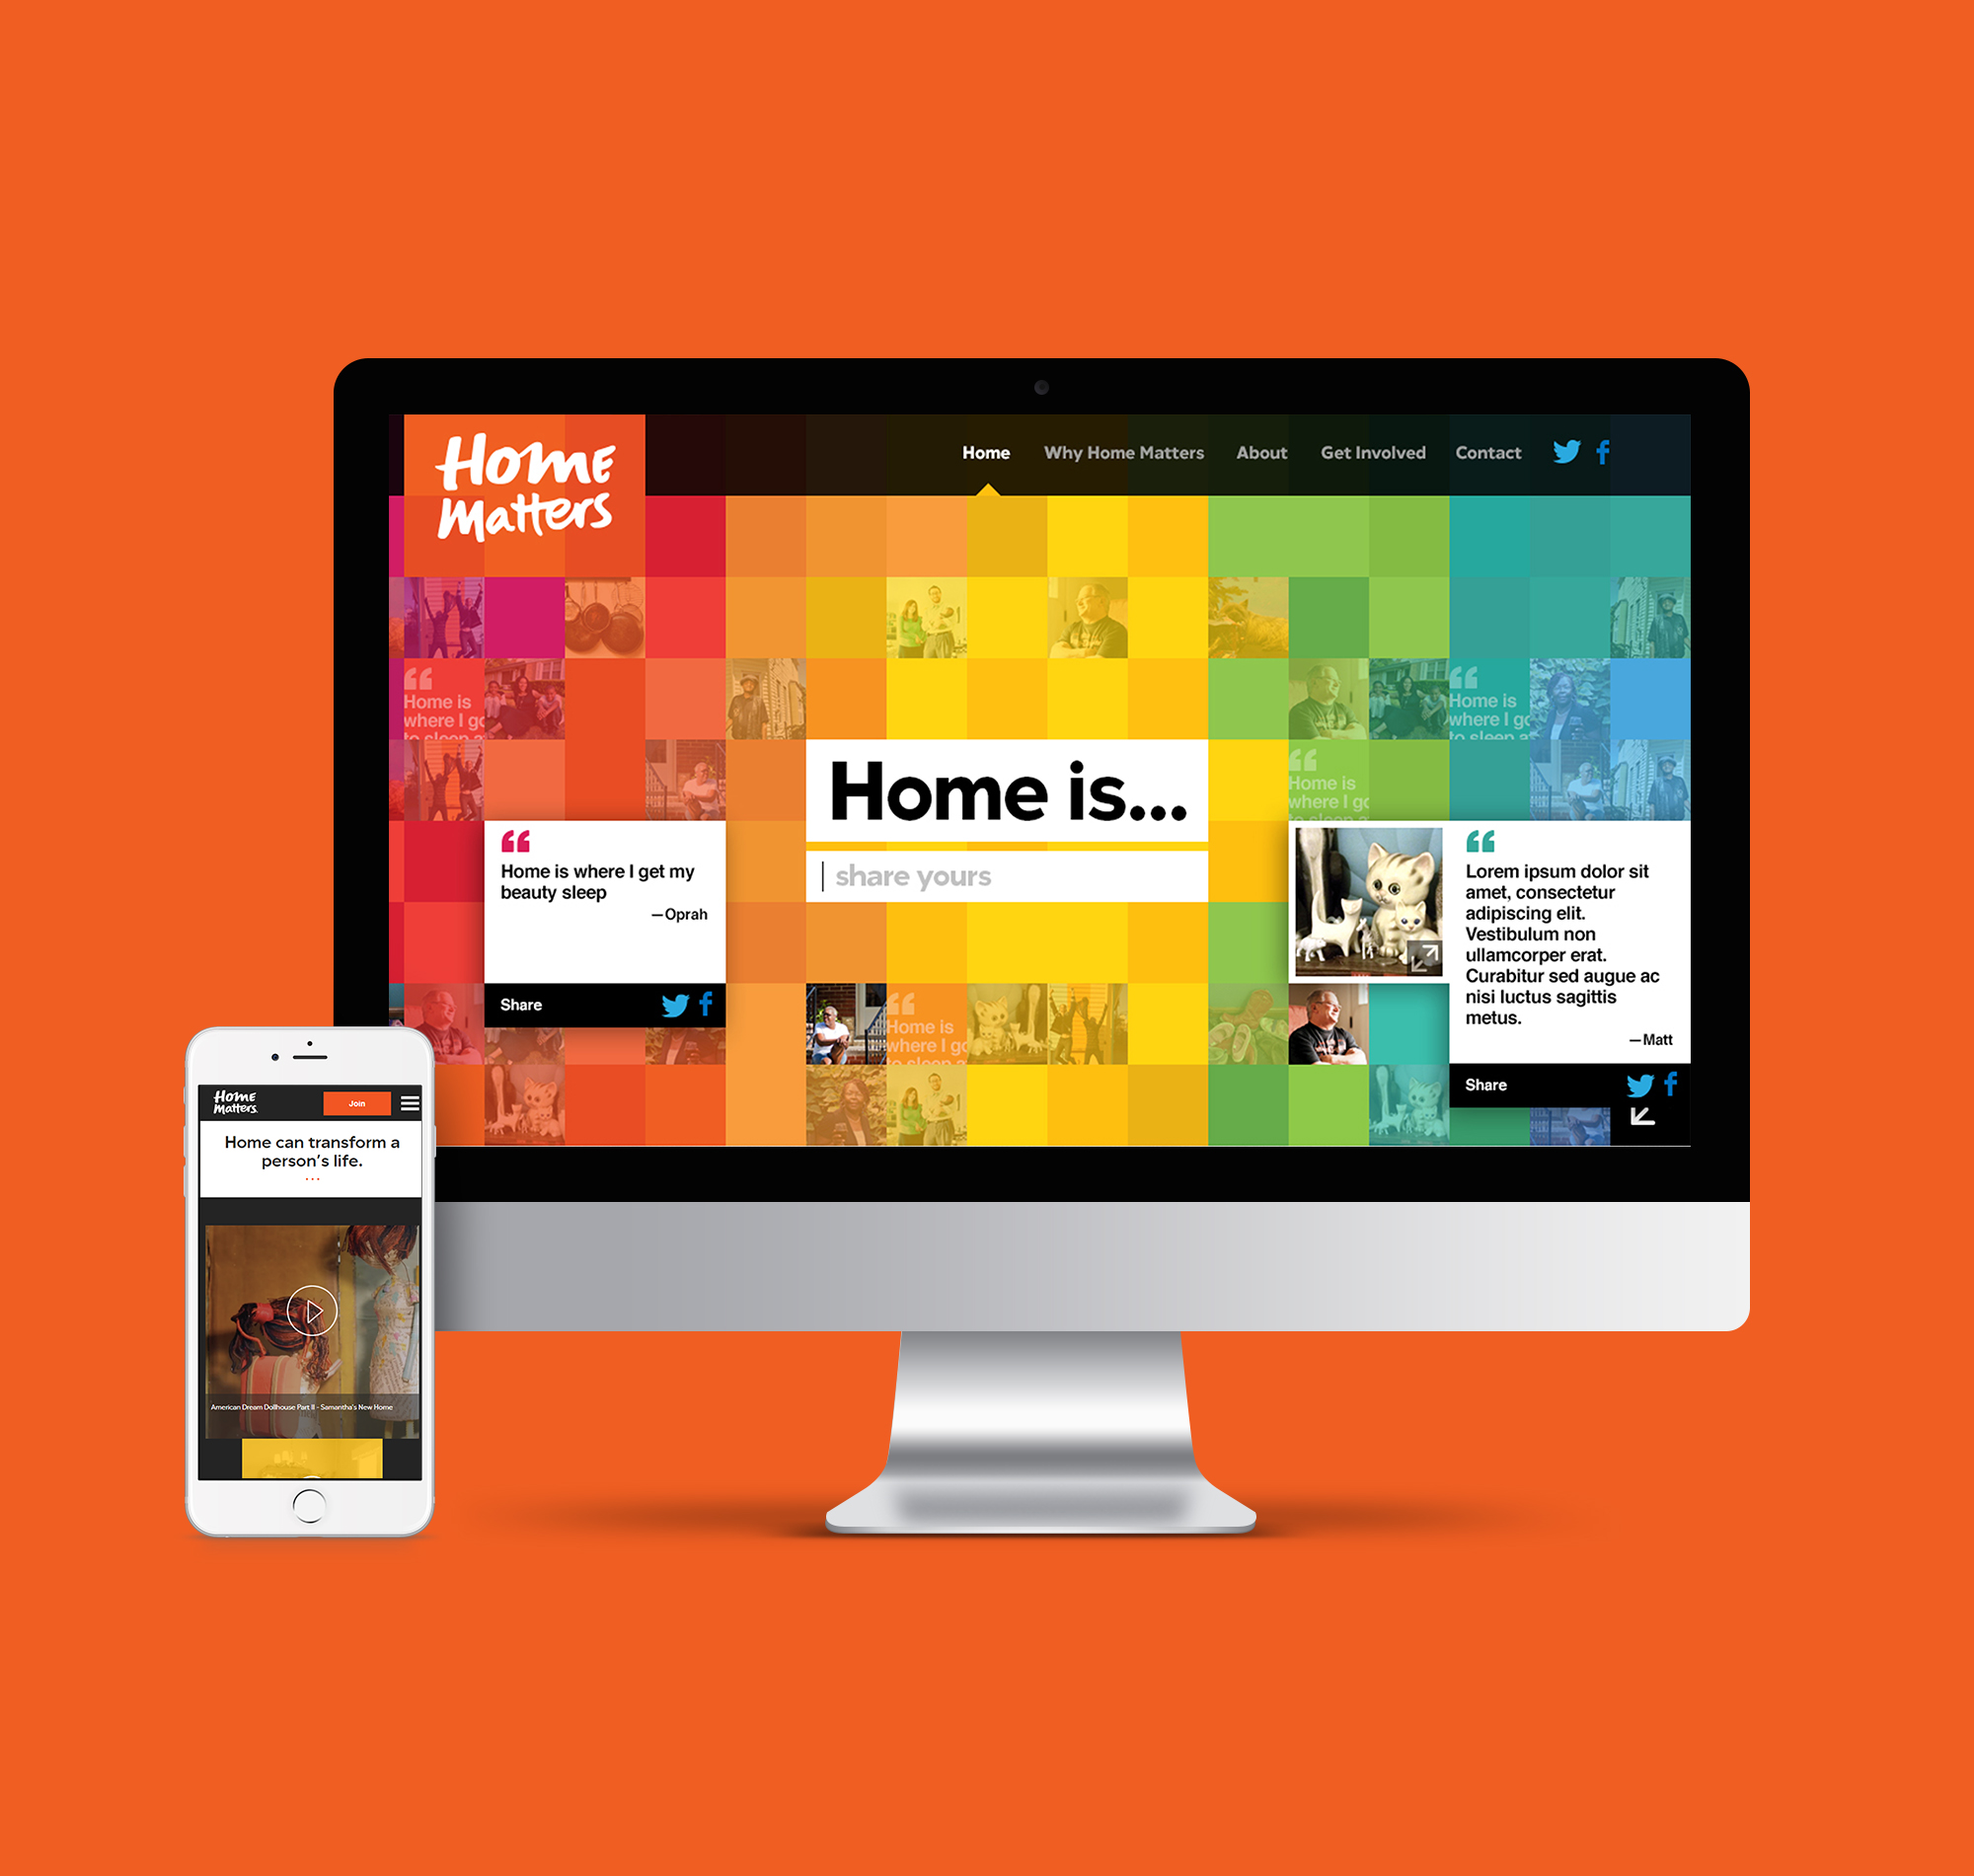 Home Matters website